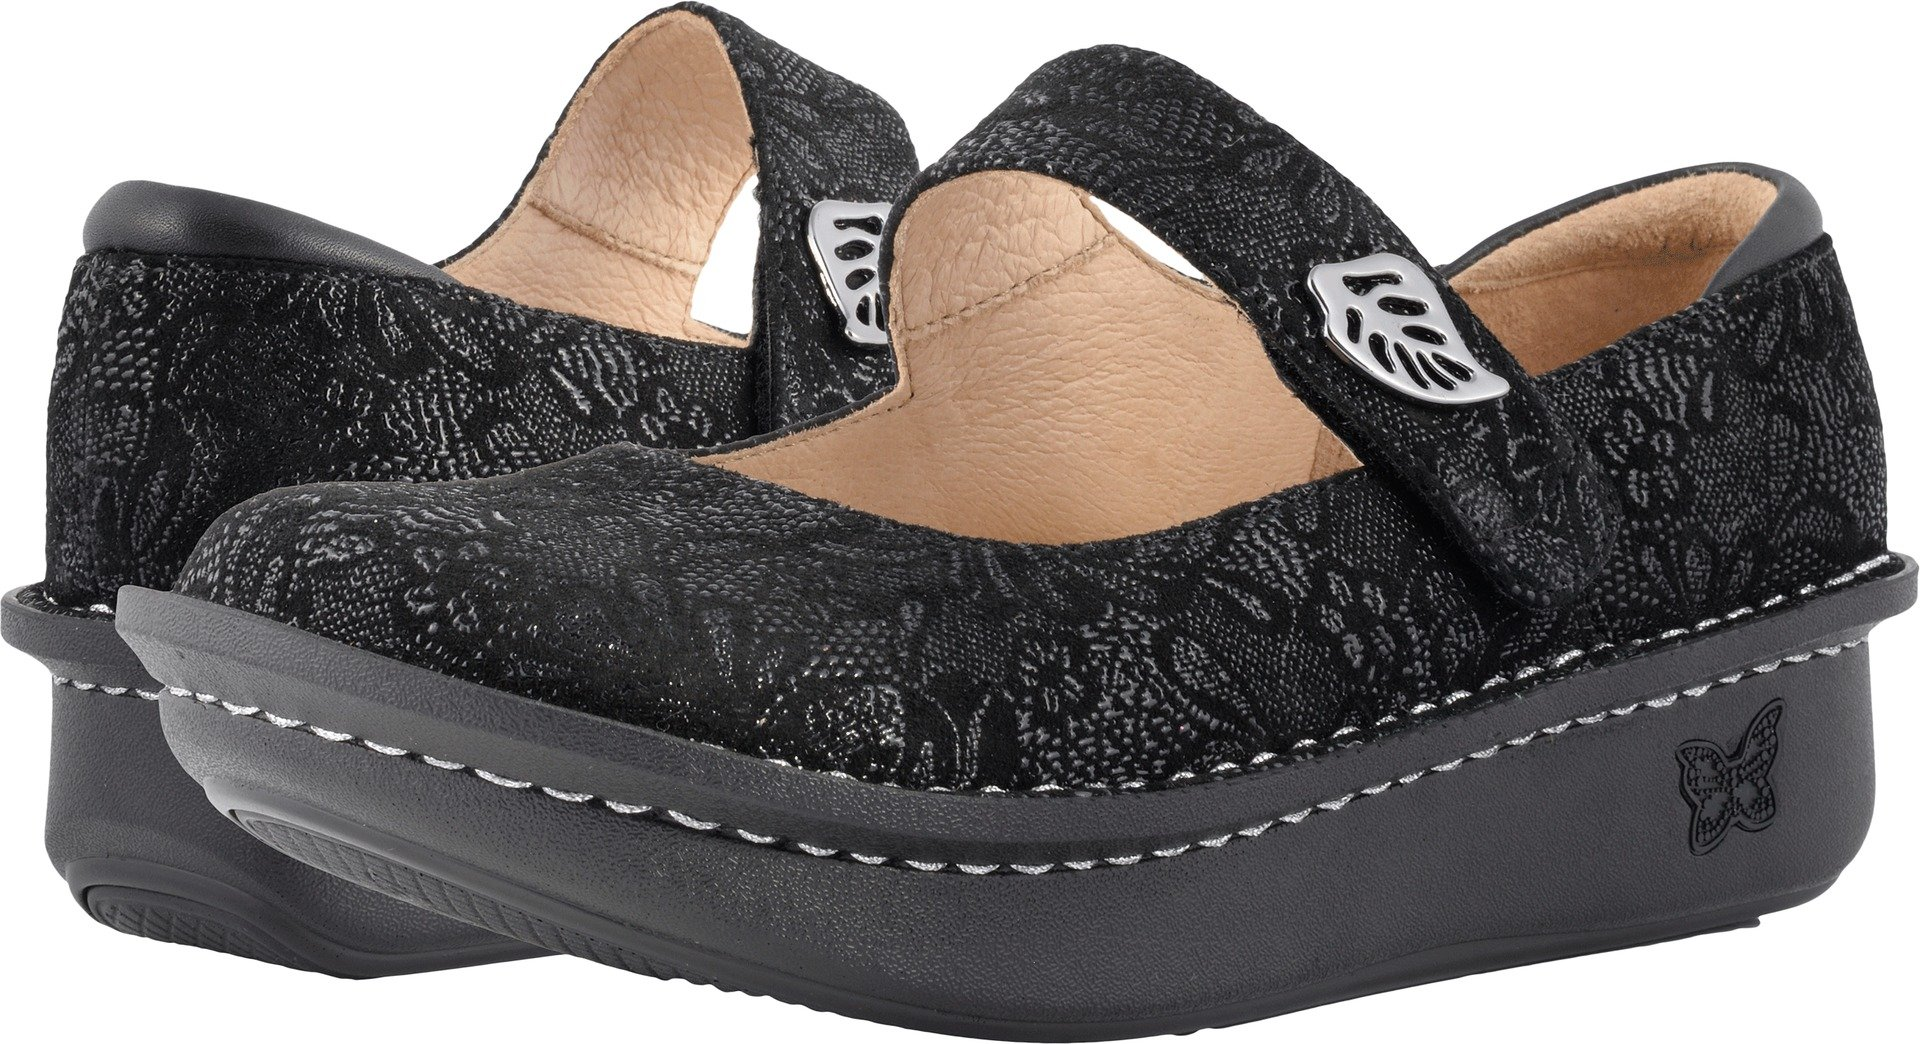 Alegria Women's Paloma Exclusive Black Leaf Mary Jane by Alegria